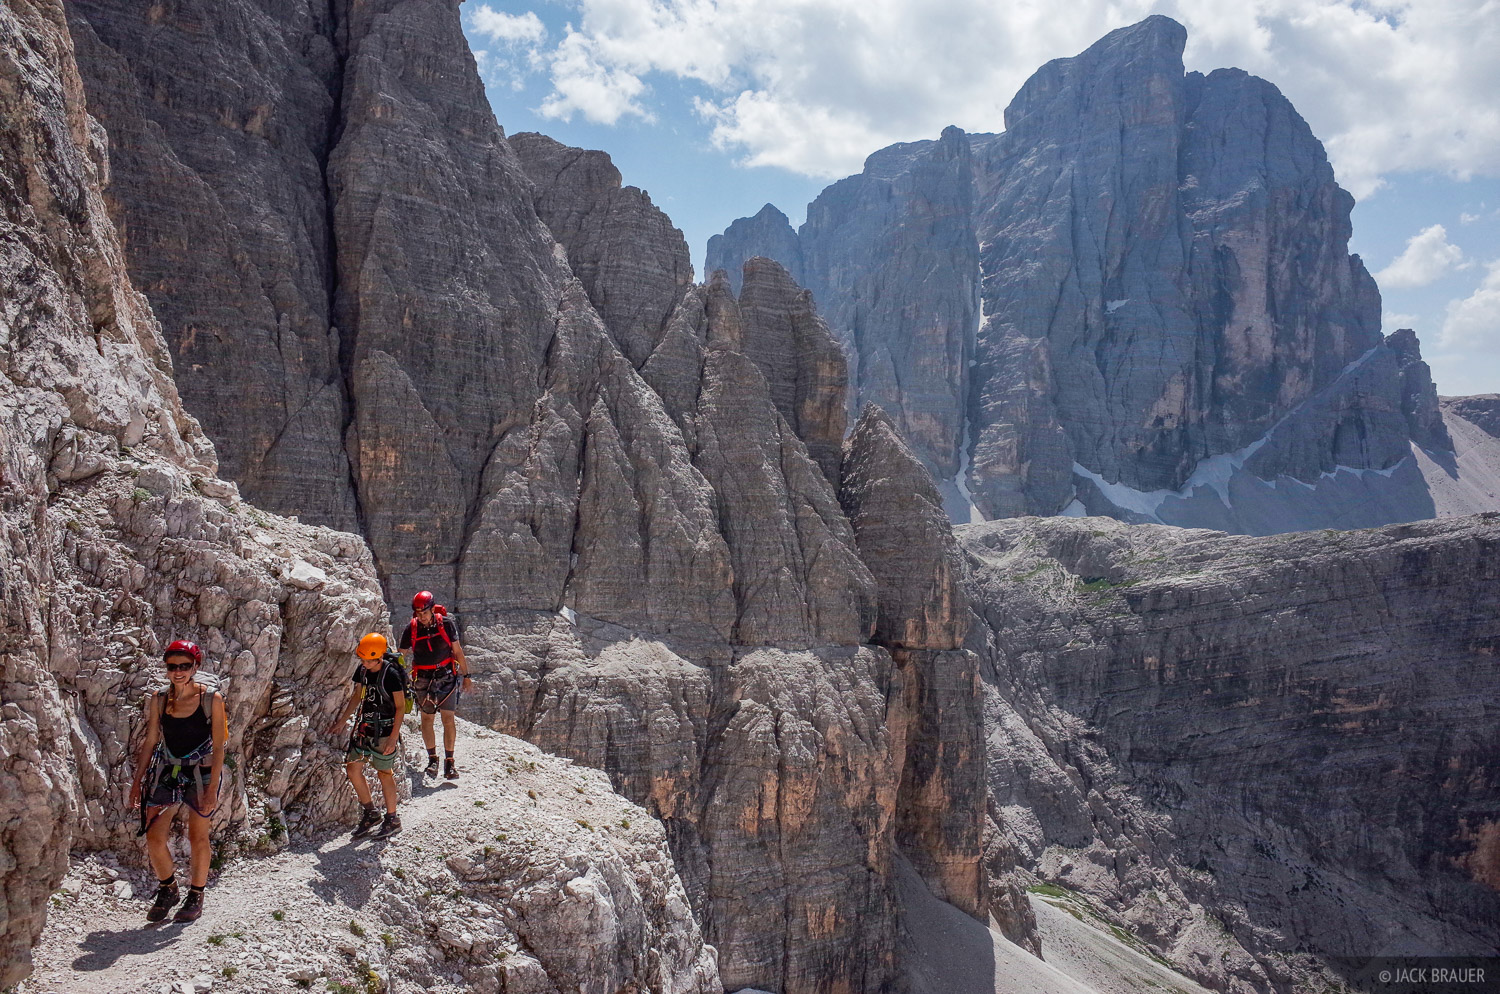 Dolomites, Italy, via ferrata, Strada degli Alpini, Zwolferkofel, Alps, photo